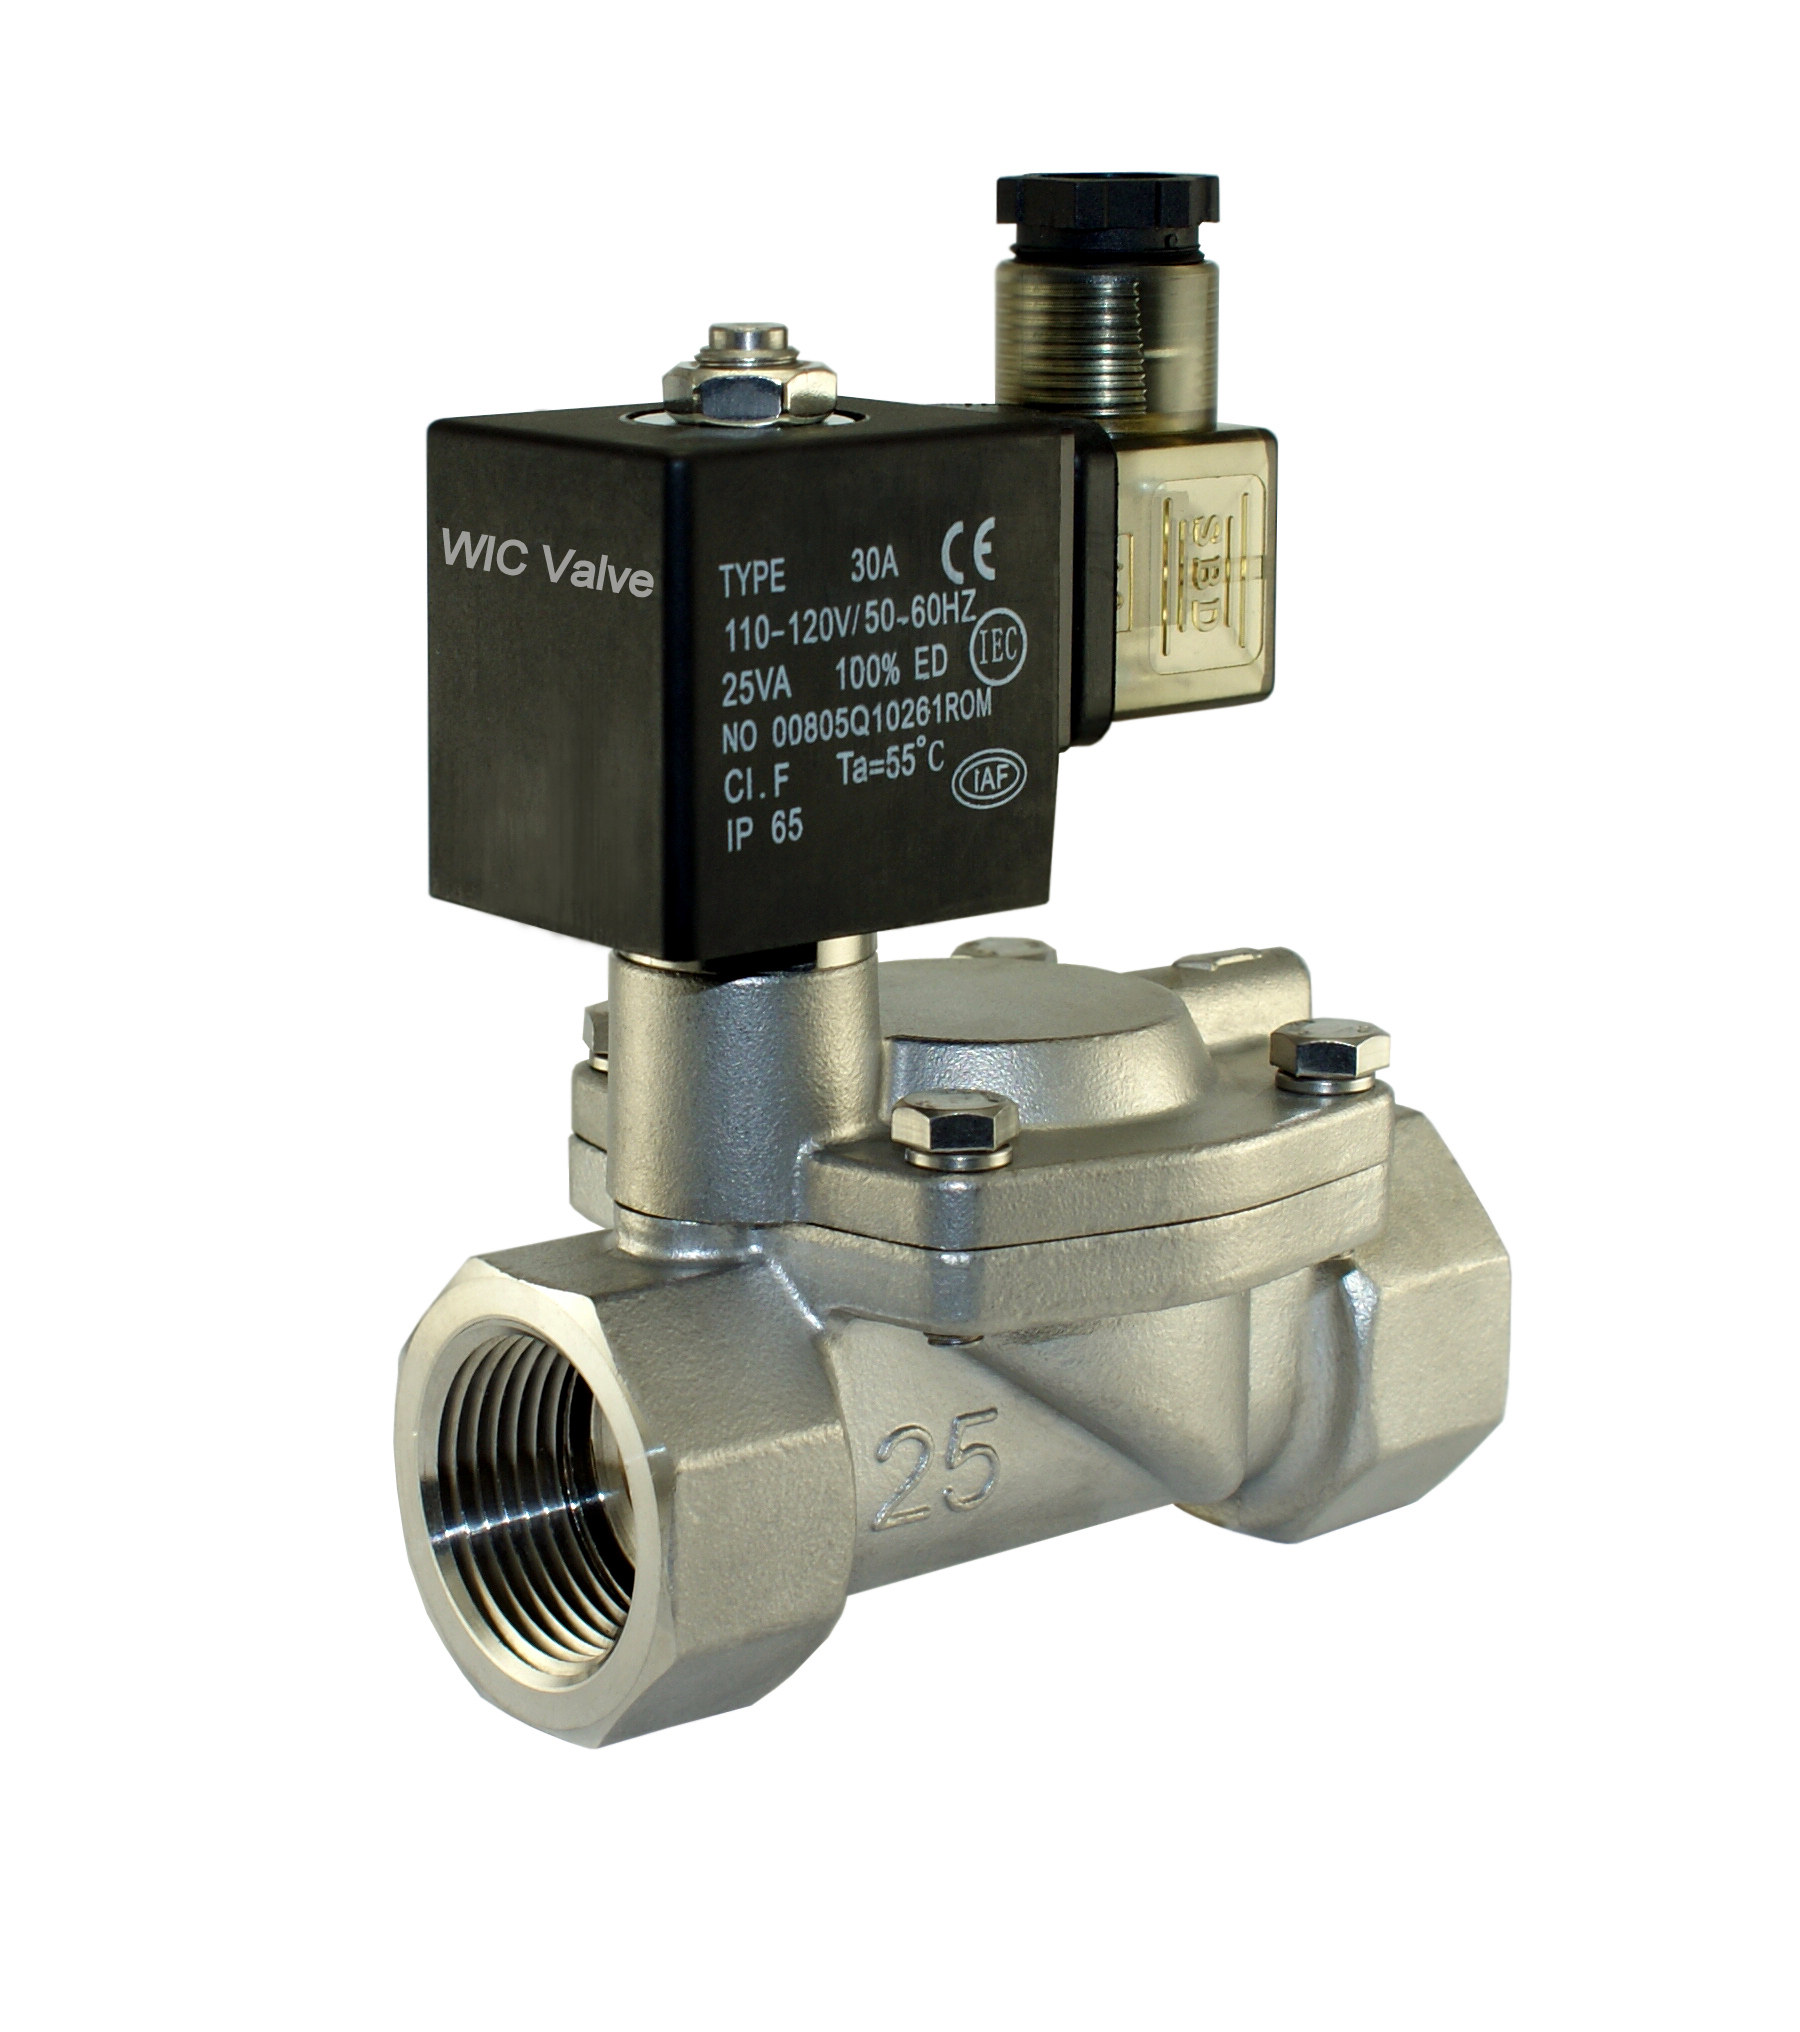 Slow Closing Water Hammering Resistant Electric Solenoid Valve NC 220V AC 1 Inch